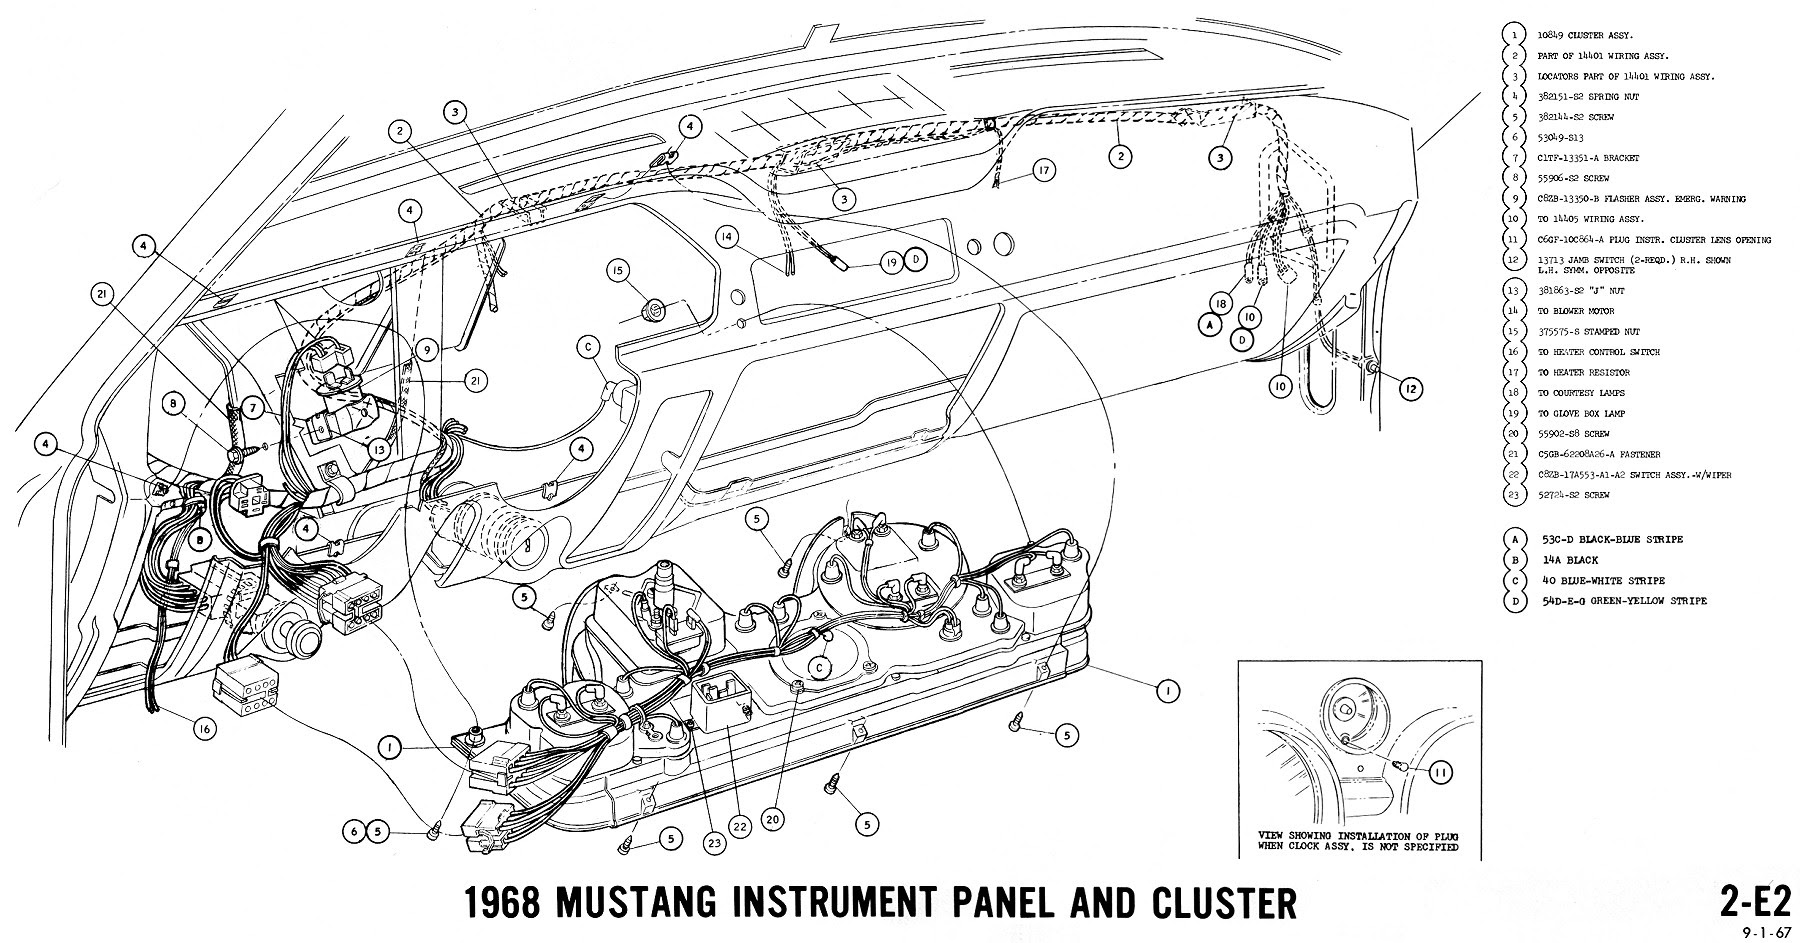 1969 Mustang Headlight Wiring Diagrams Electrical Plan Blueprint Pictures For Wiring Diagram Schematics